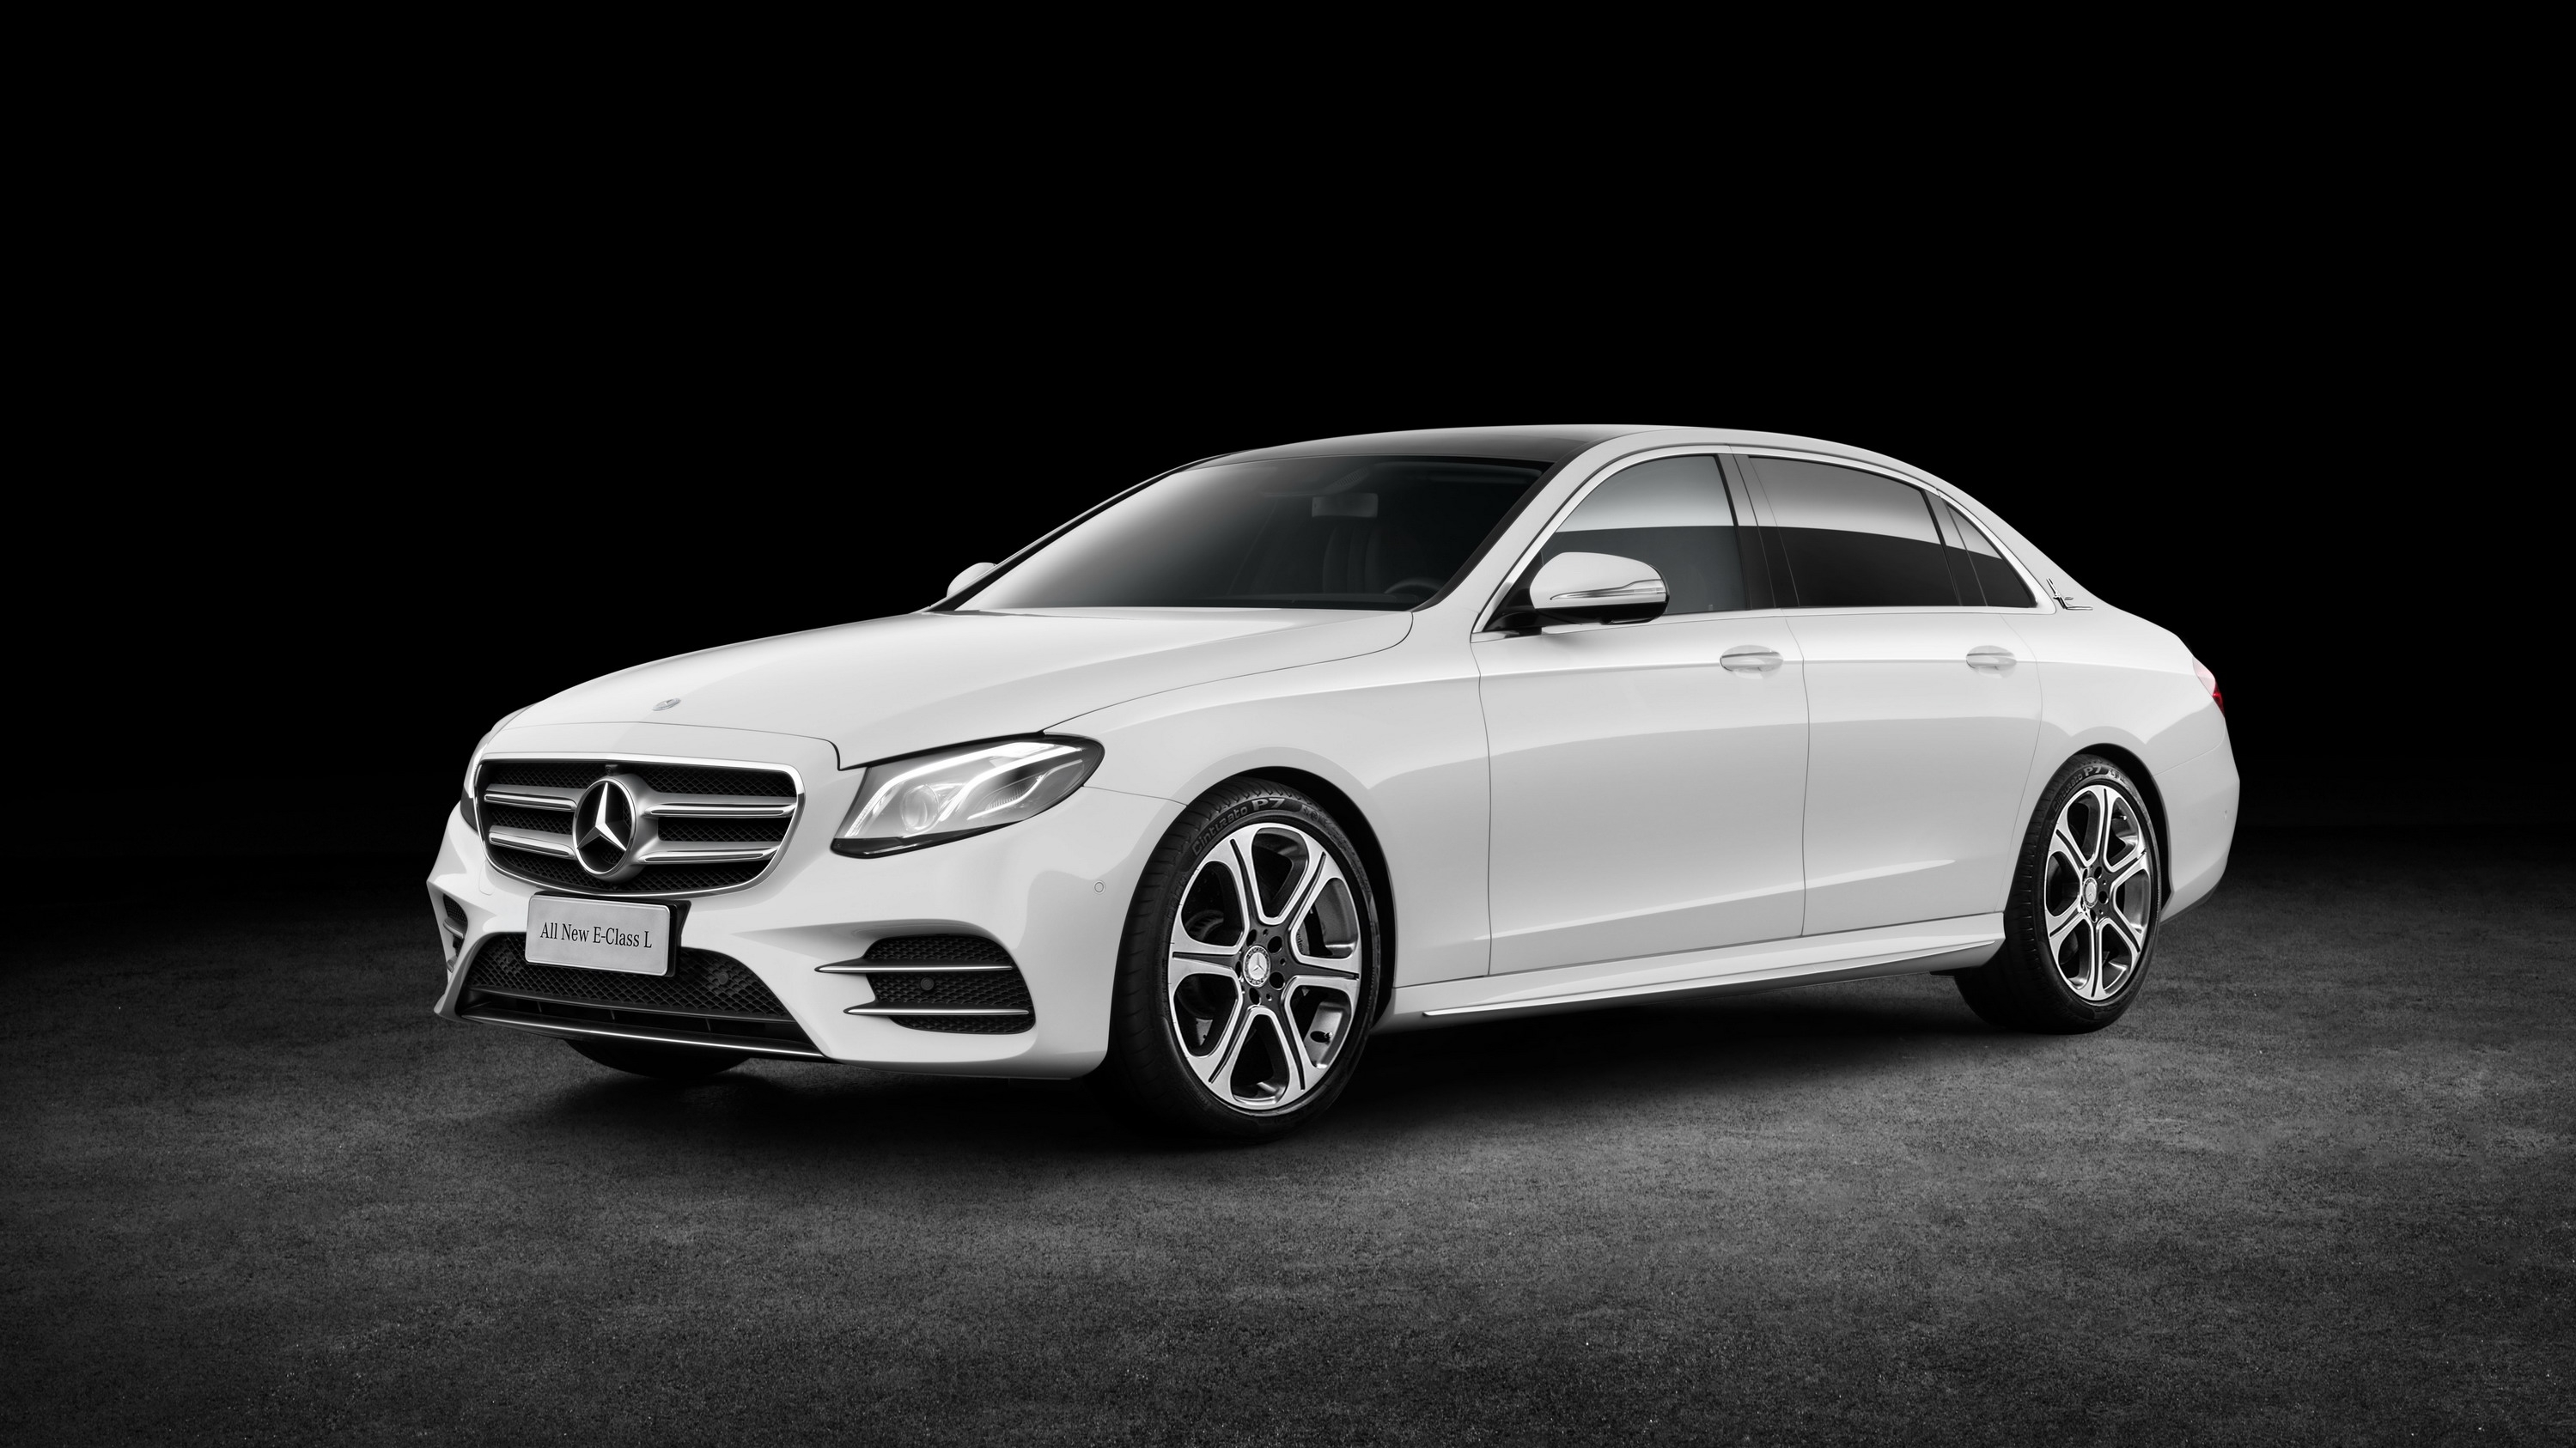 2017 Mercedes-Benz E-Class L | Top Speed